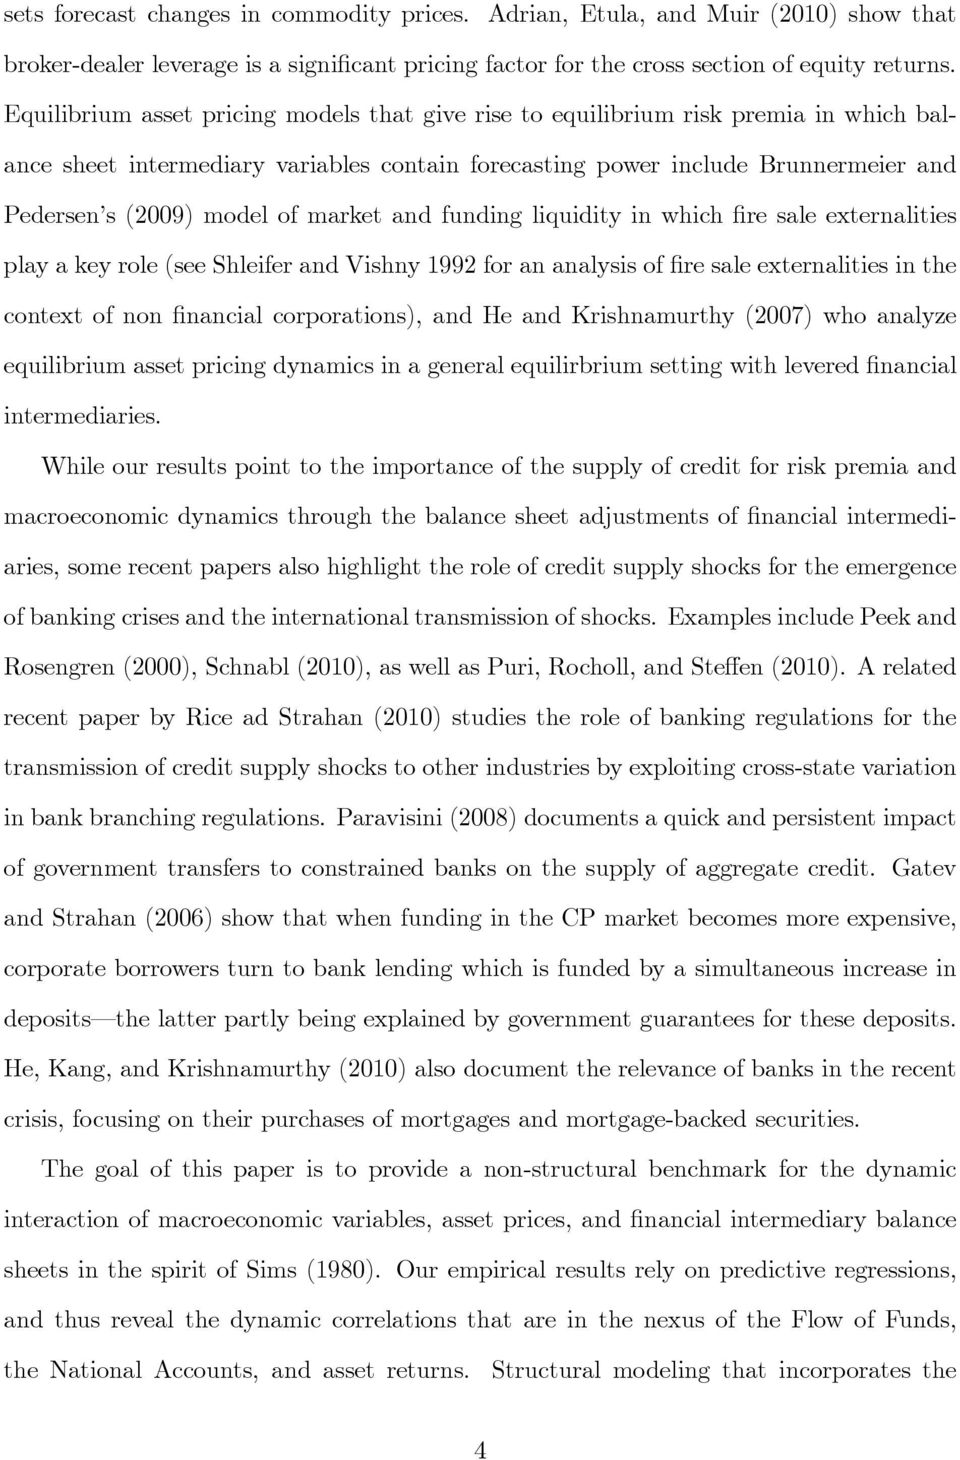 market and funding liquidity in which re sale externalities play a key role (see Shleifer and Vishny 1992 for an analysis of re sale externalities in the context of non nancial corporations), and He